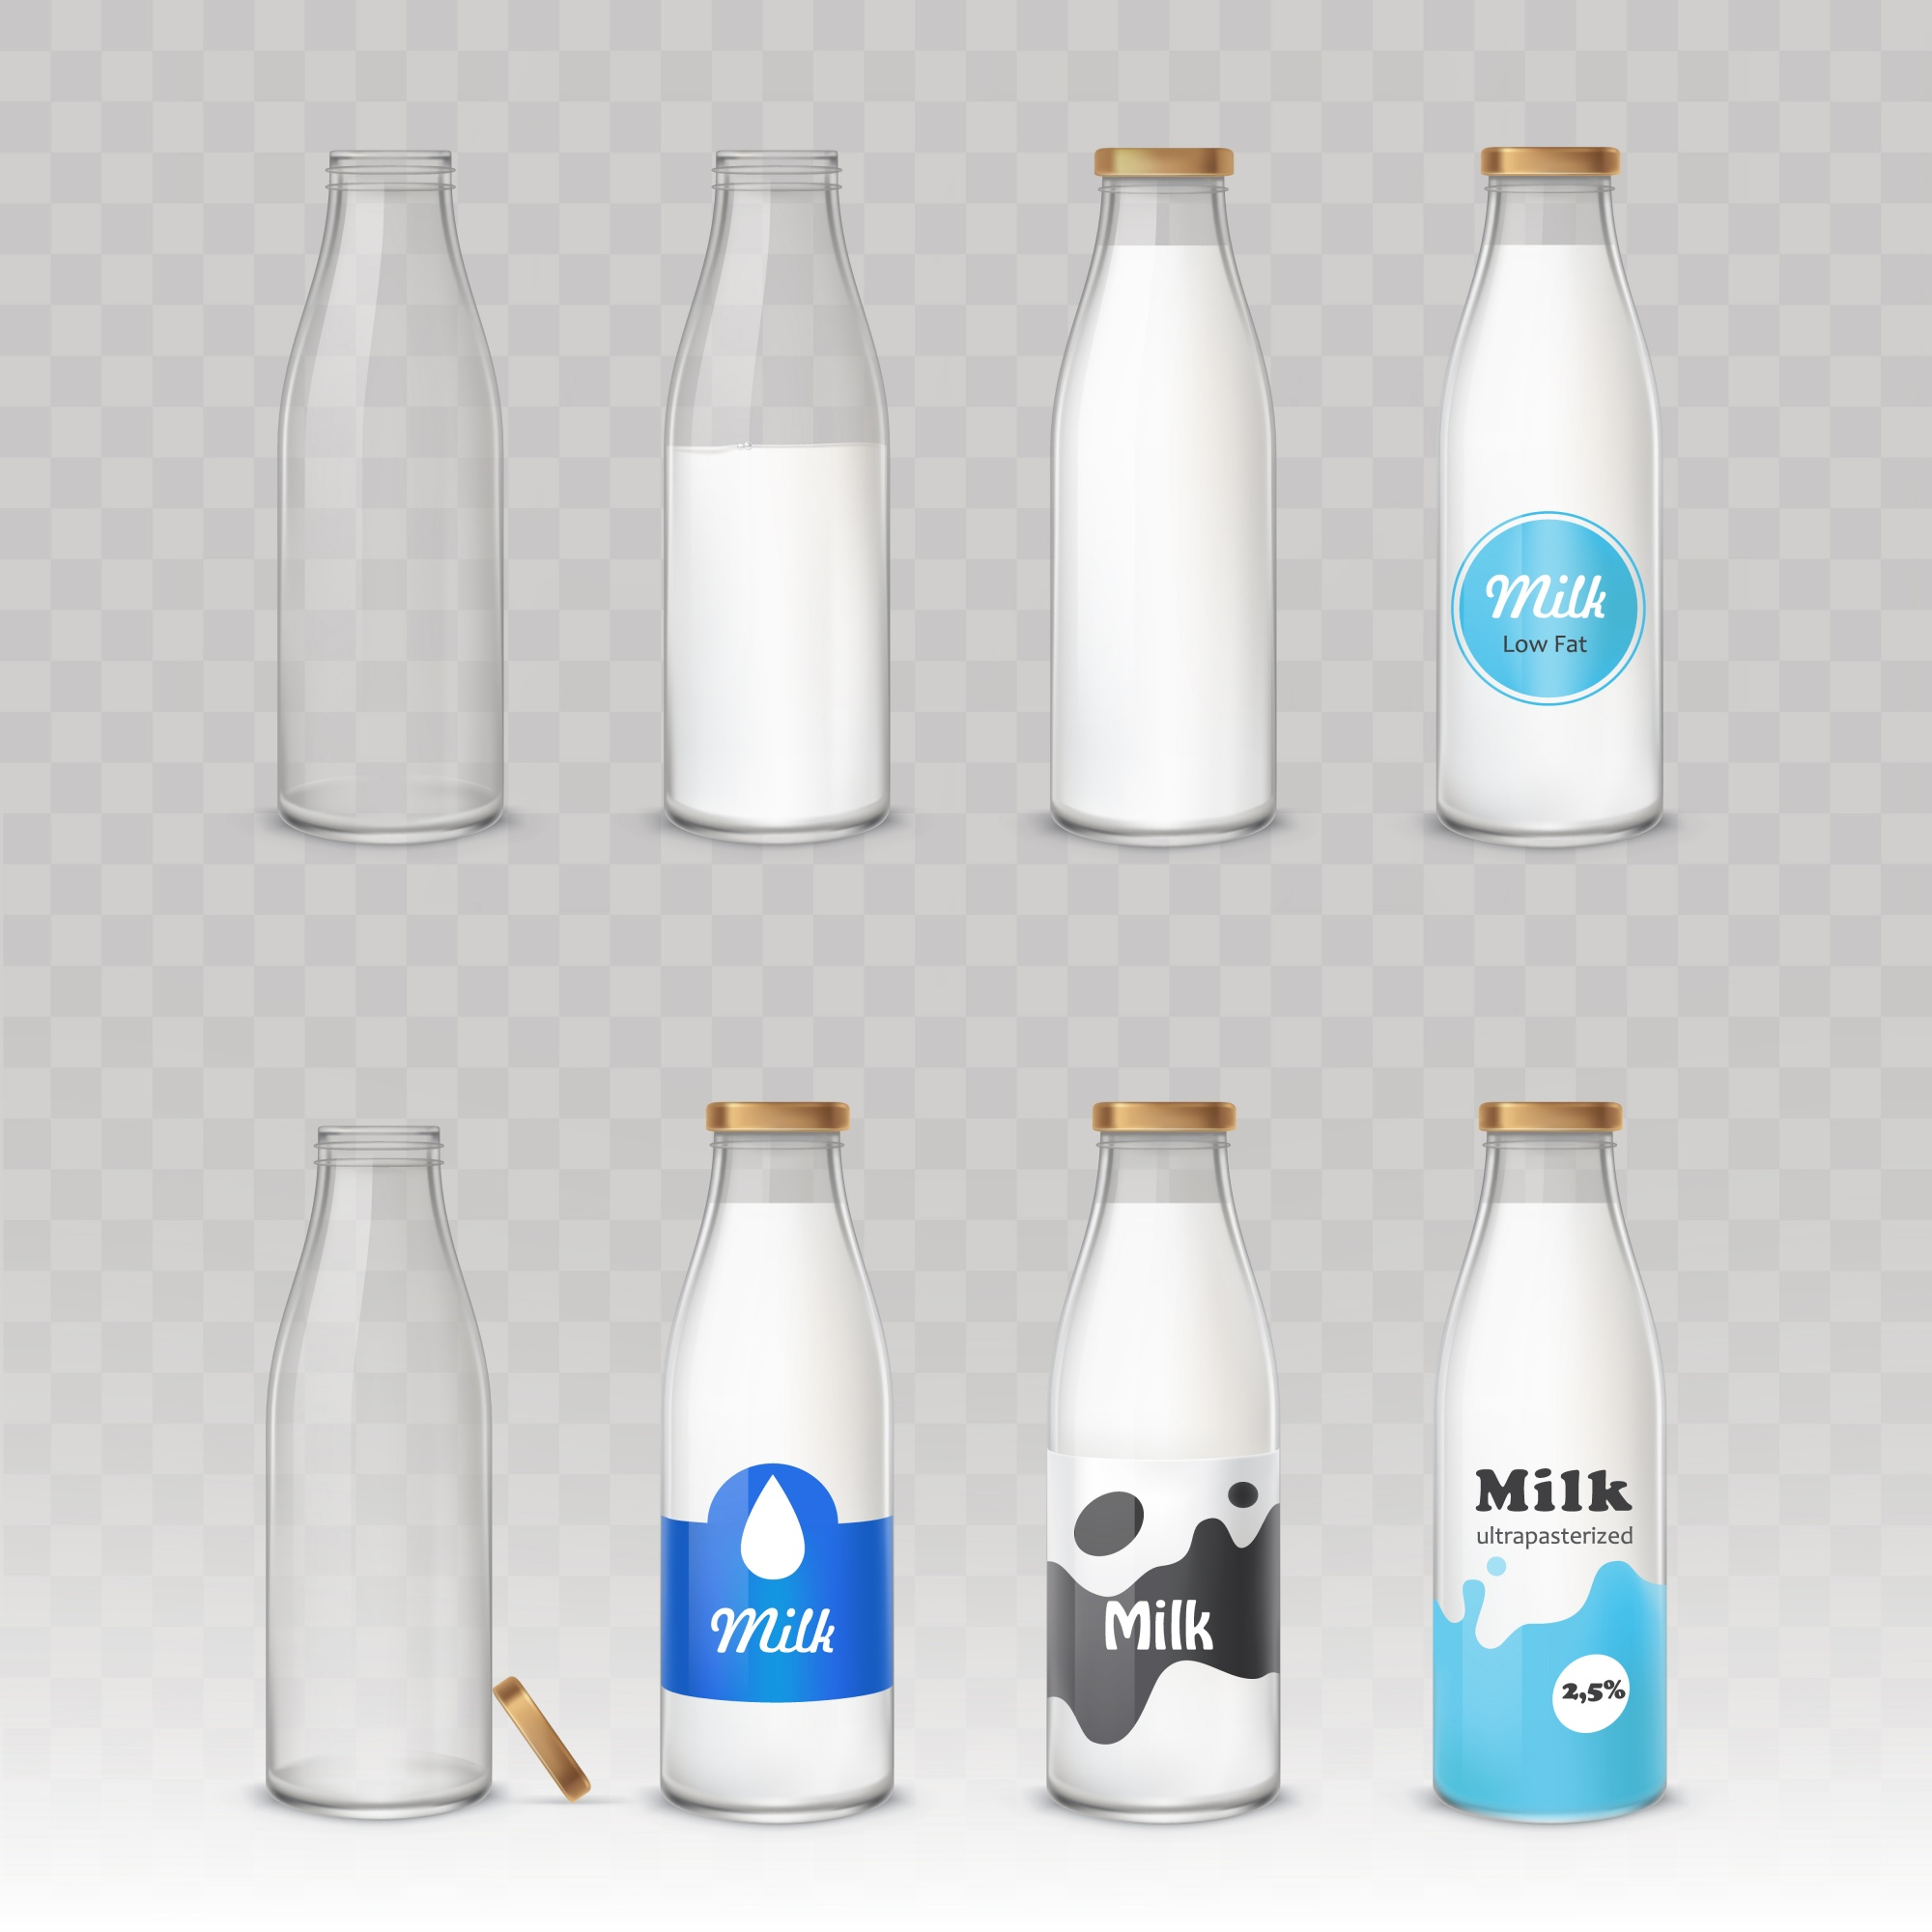 Set of glass bottles with milk with different labels.